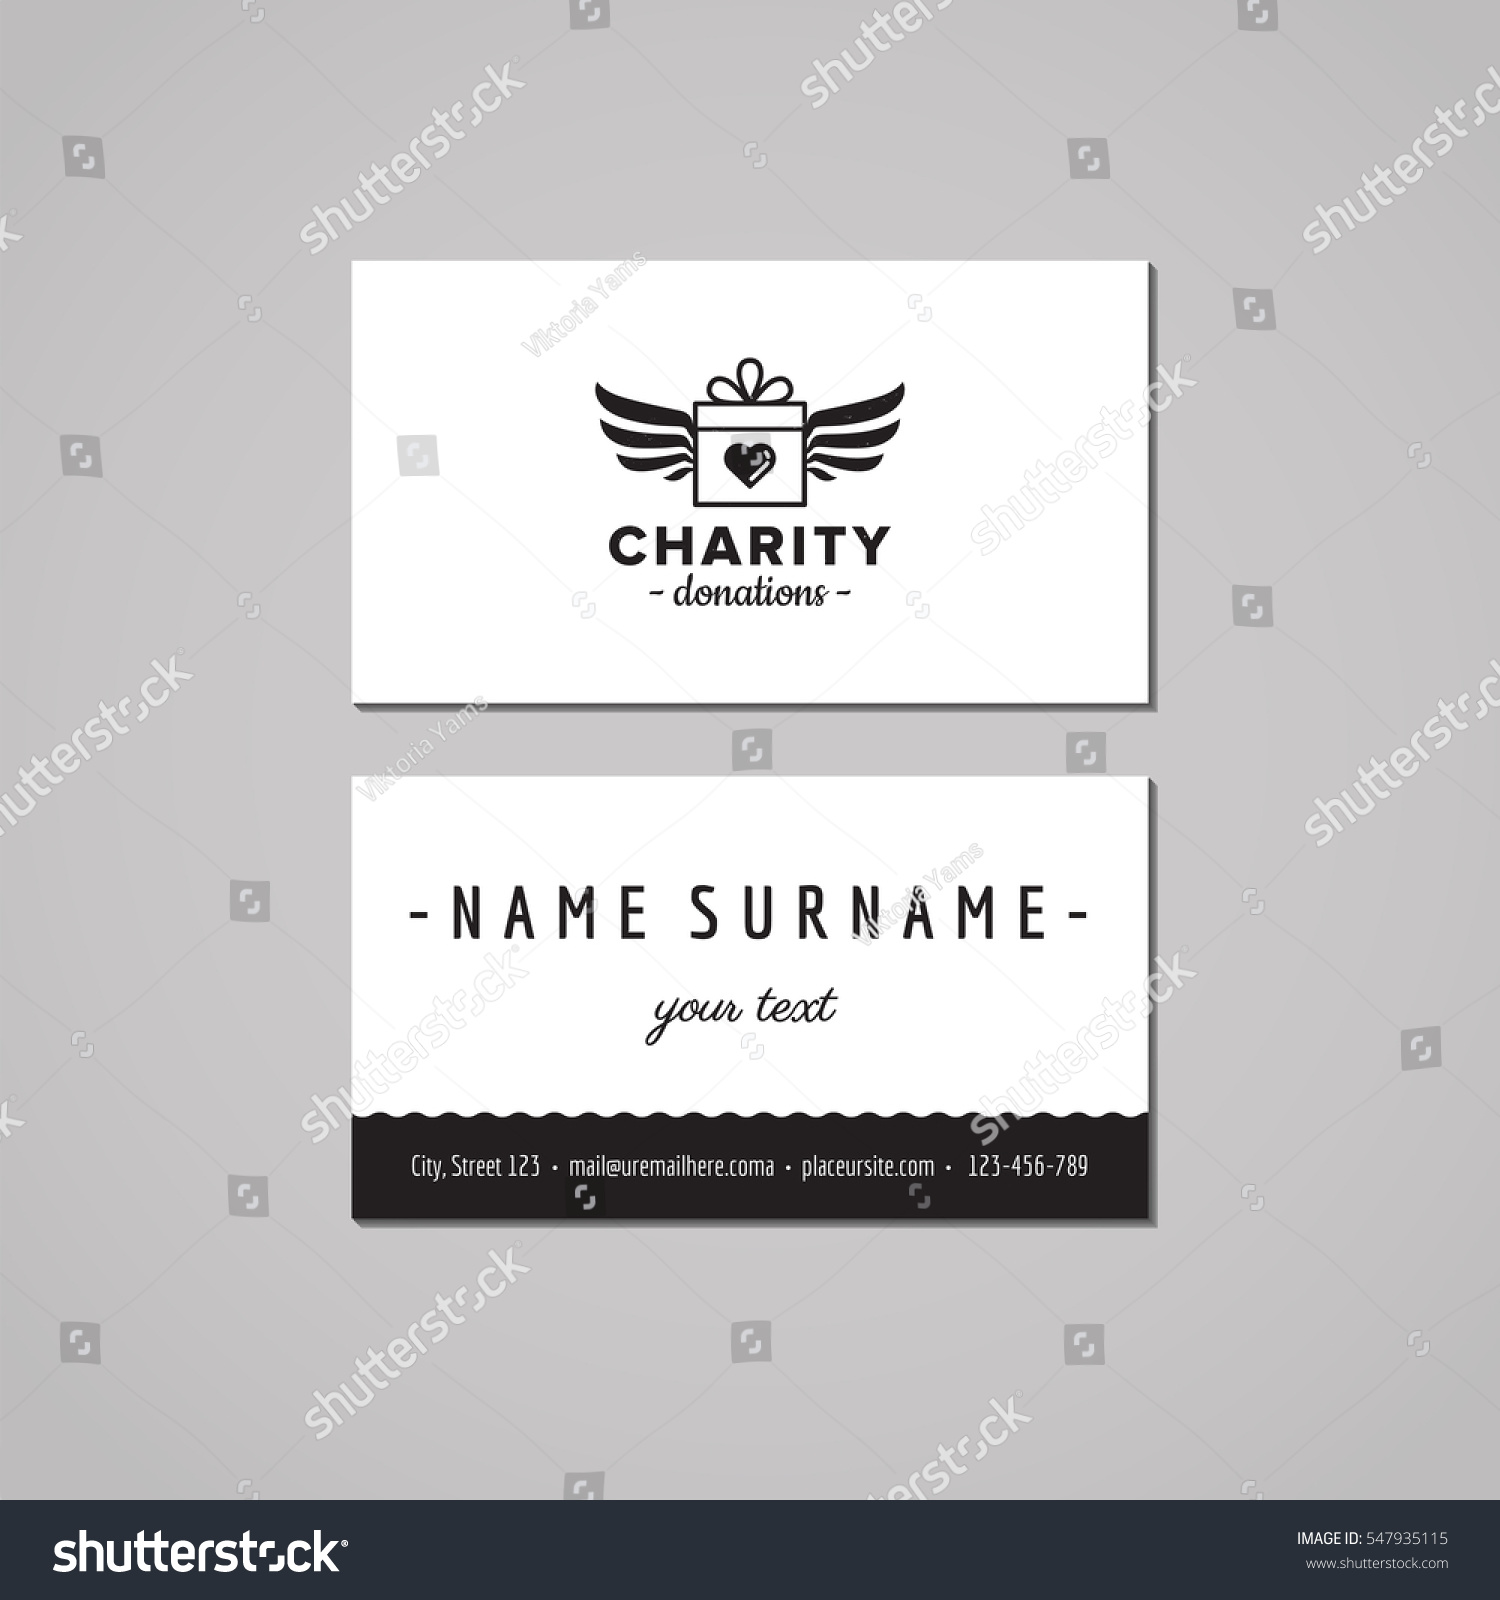 Donations Charity Business Card Design Concept Stock Vector